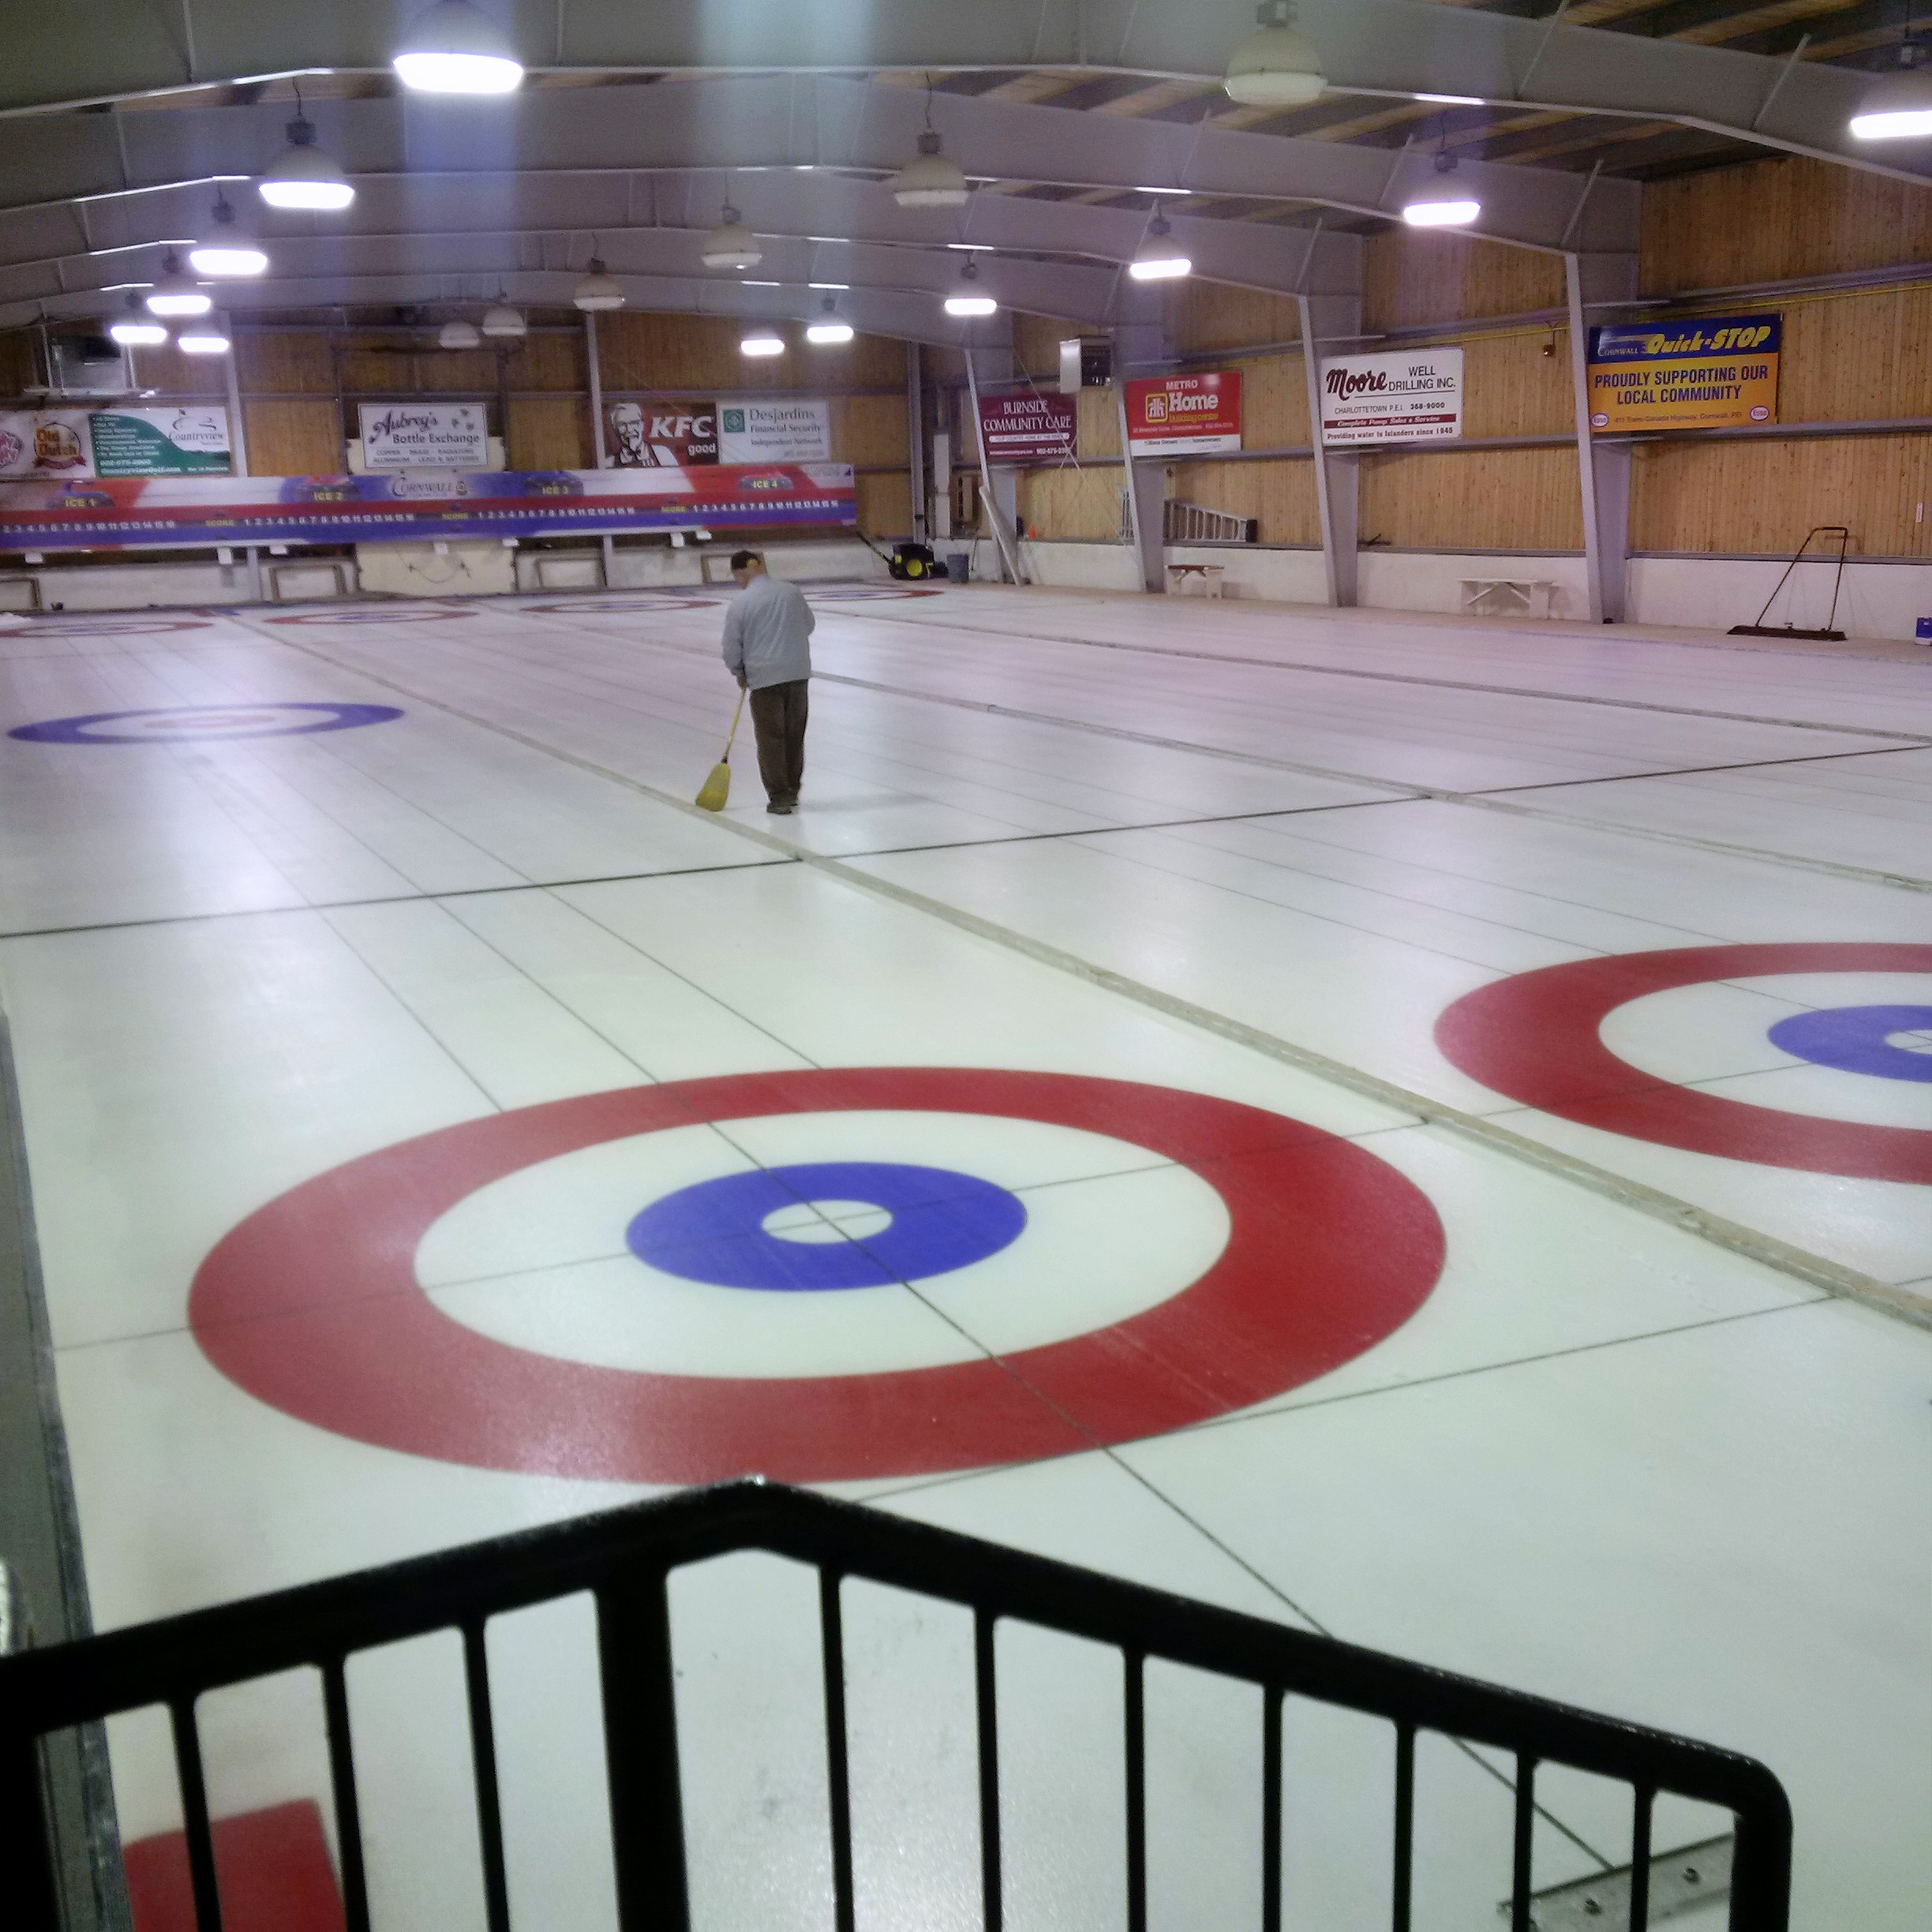 It's time to curl! Daytime Drop-In curling goes at 10 am, Curling School starts this eve., New Member Reg. is Wed. eve.